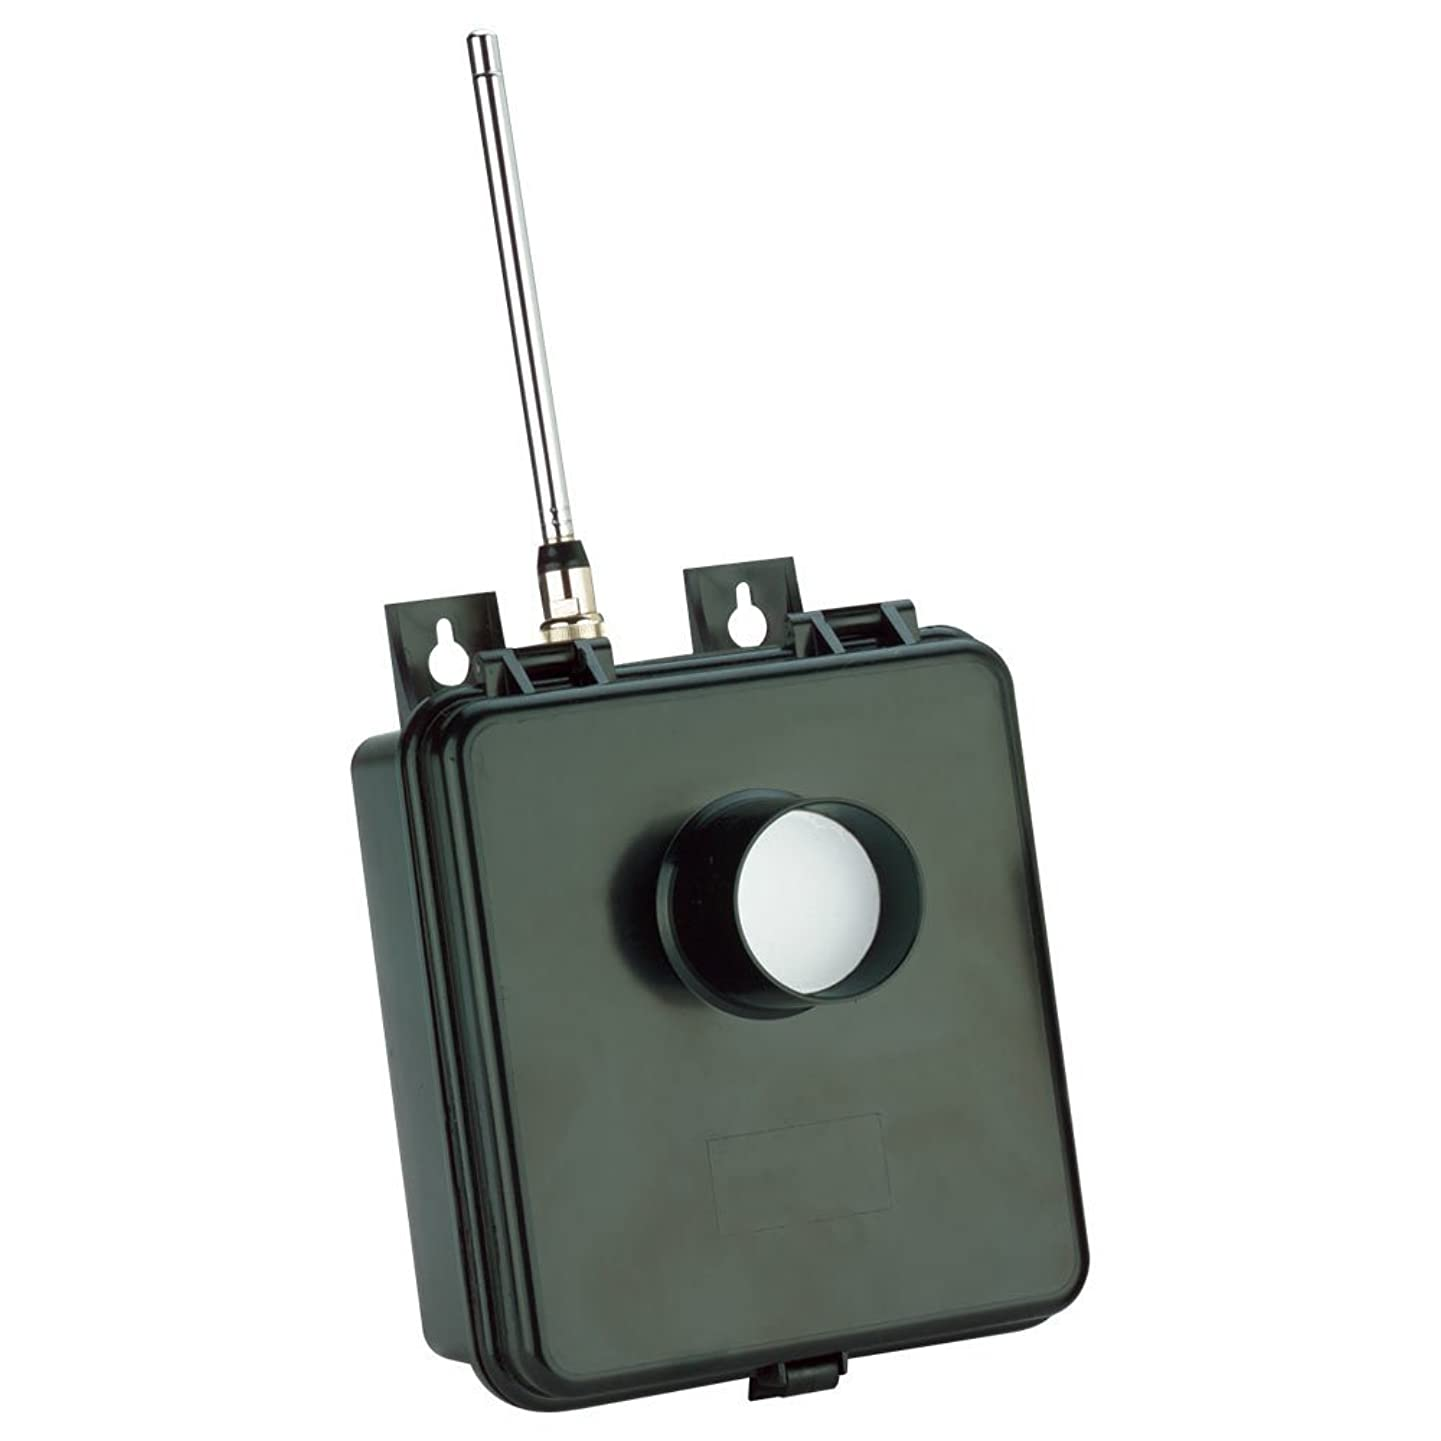 Dakota Alert MURS Alert Transmitter,2 Watts of Output Power, Gives you Real Time Monitoring, Capable of Sending 4 Different Alert Messages to the Transceiver, Great for Security Guards, Small Businesses and Hunters